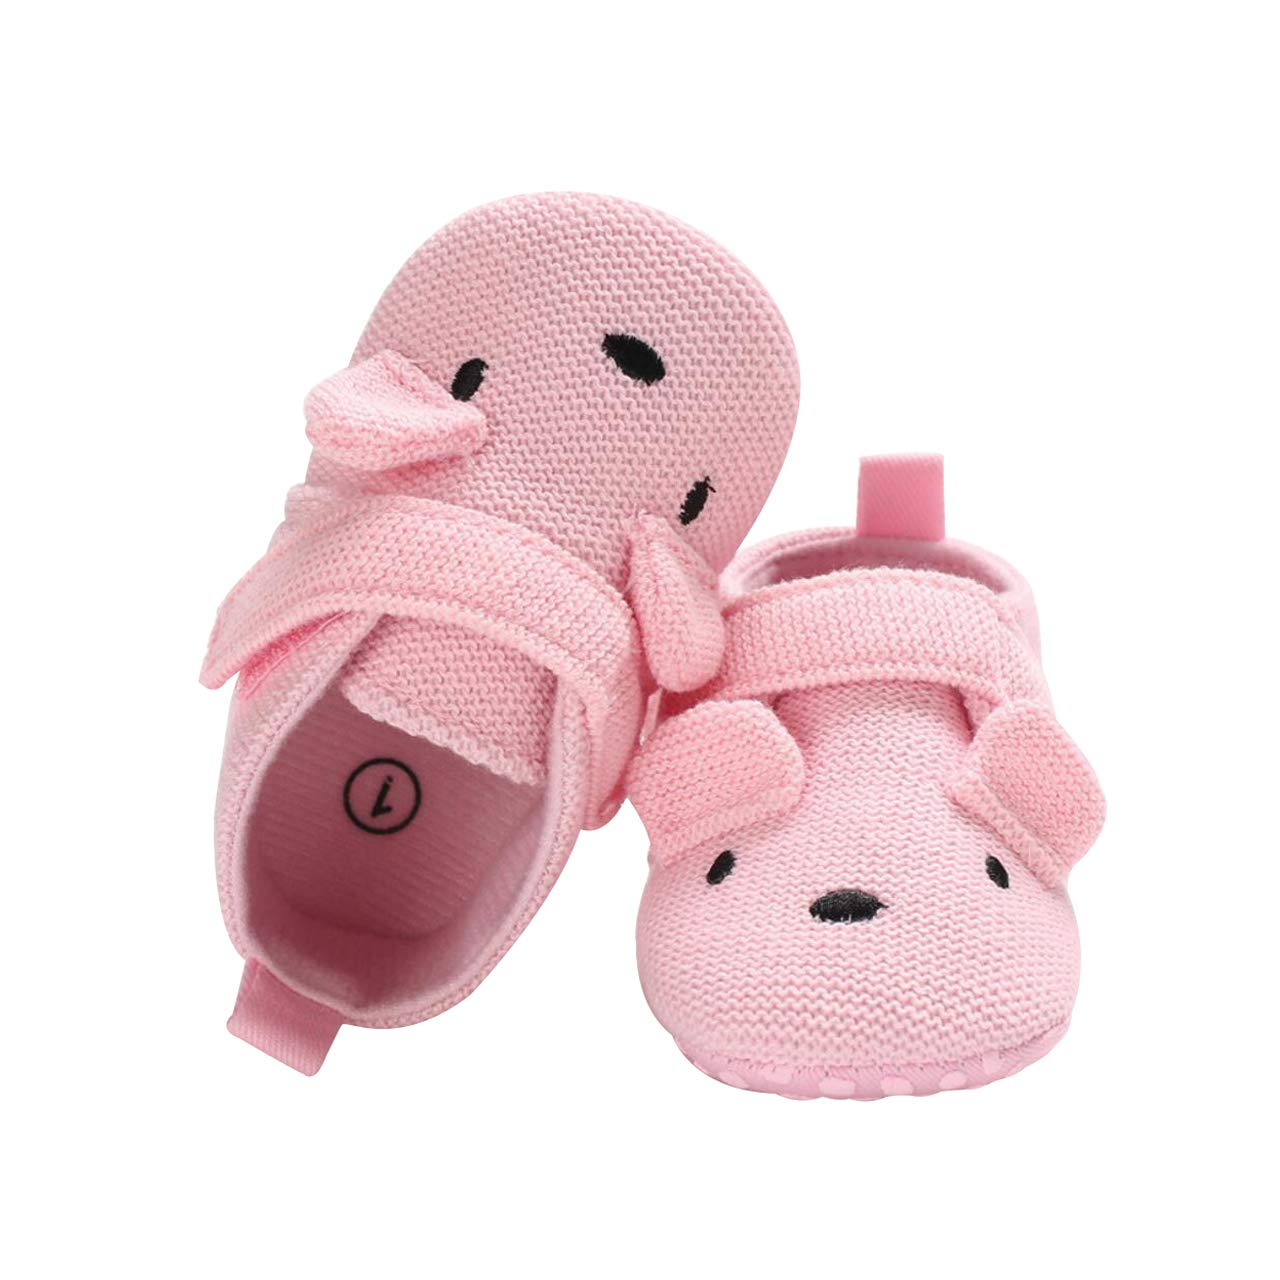 DEBAIJIA Baby Shoes Cotton Cloth Material Toddler Shoes Anti-Slip Animals Pattern Fashion Casual Prewalker Shoes Suitable for 6-36 Months Infant Slip-on Closure Sporty Trainers Unisex